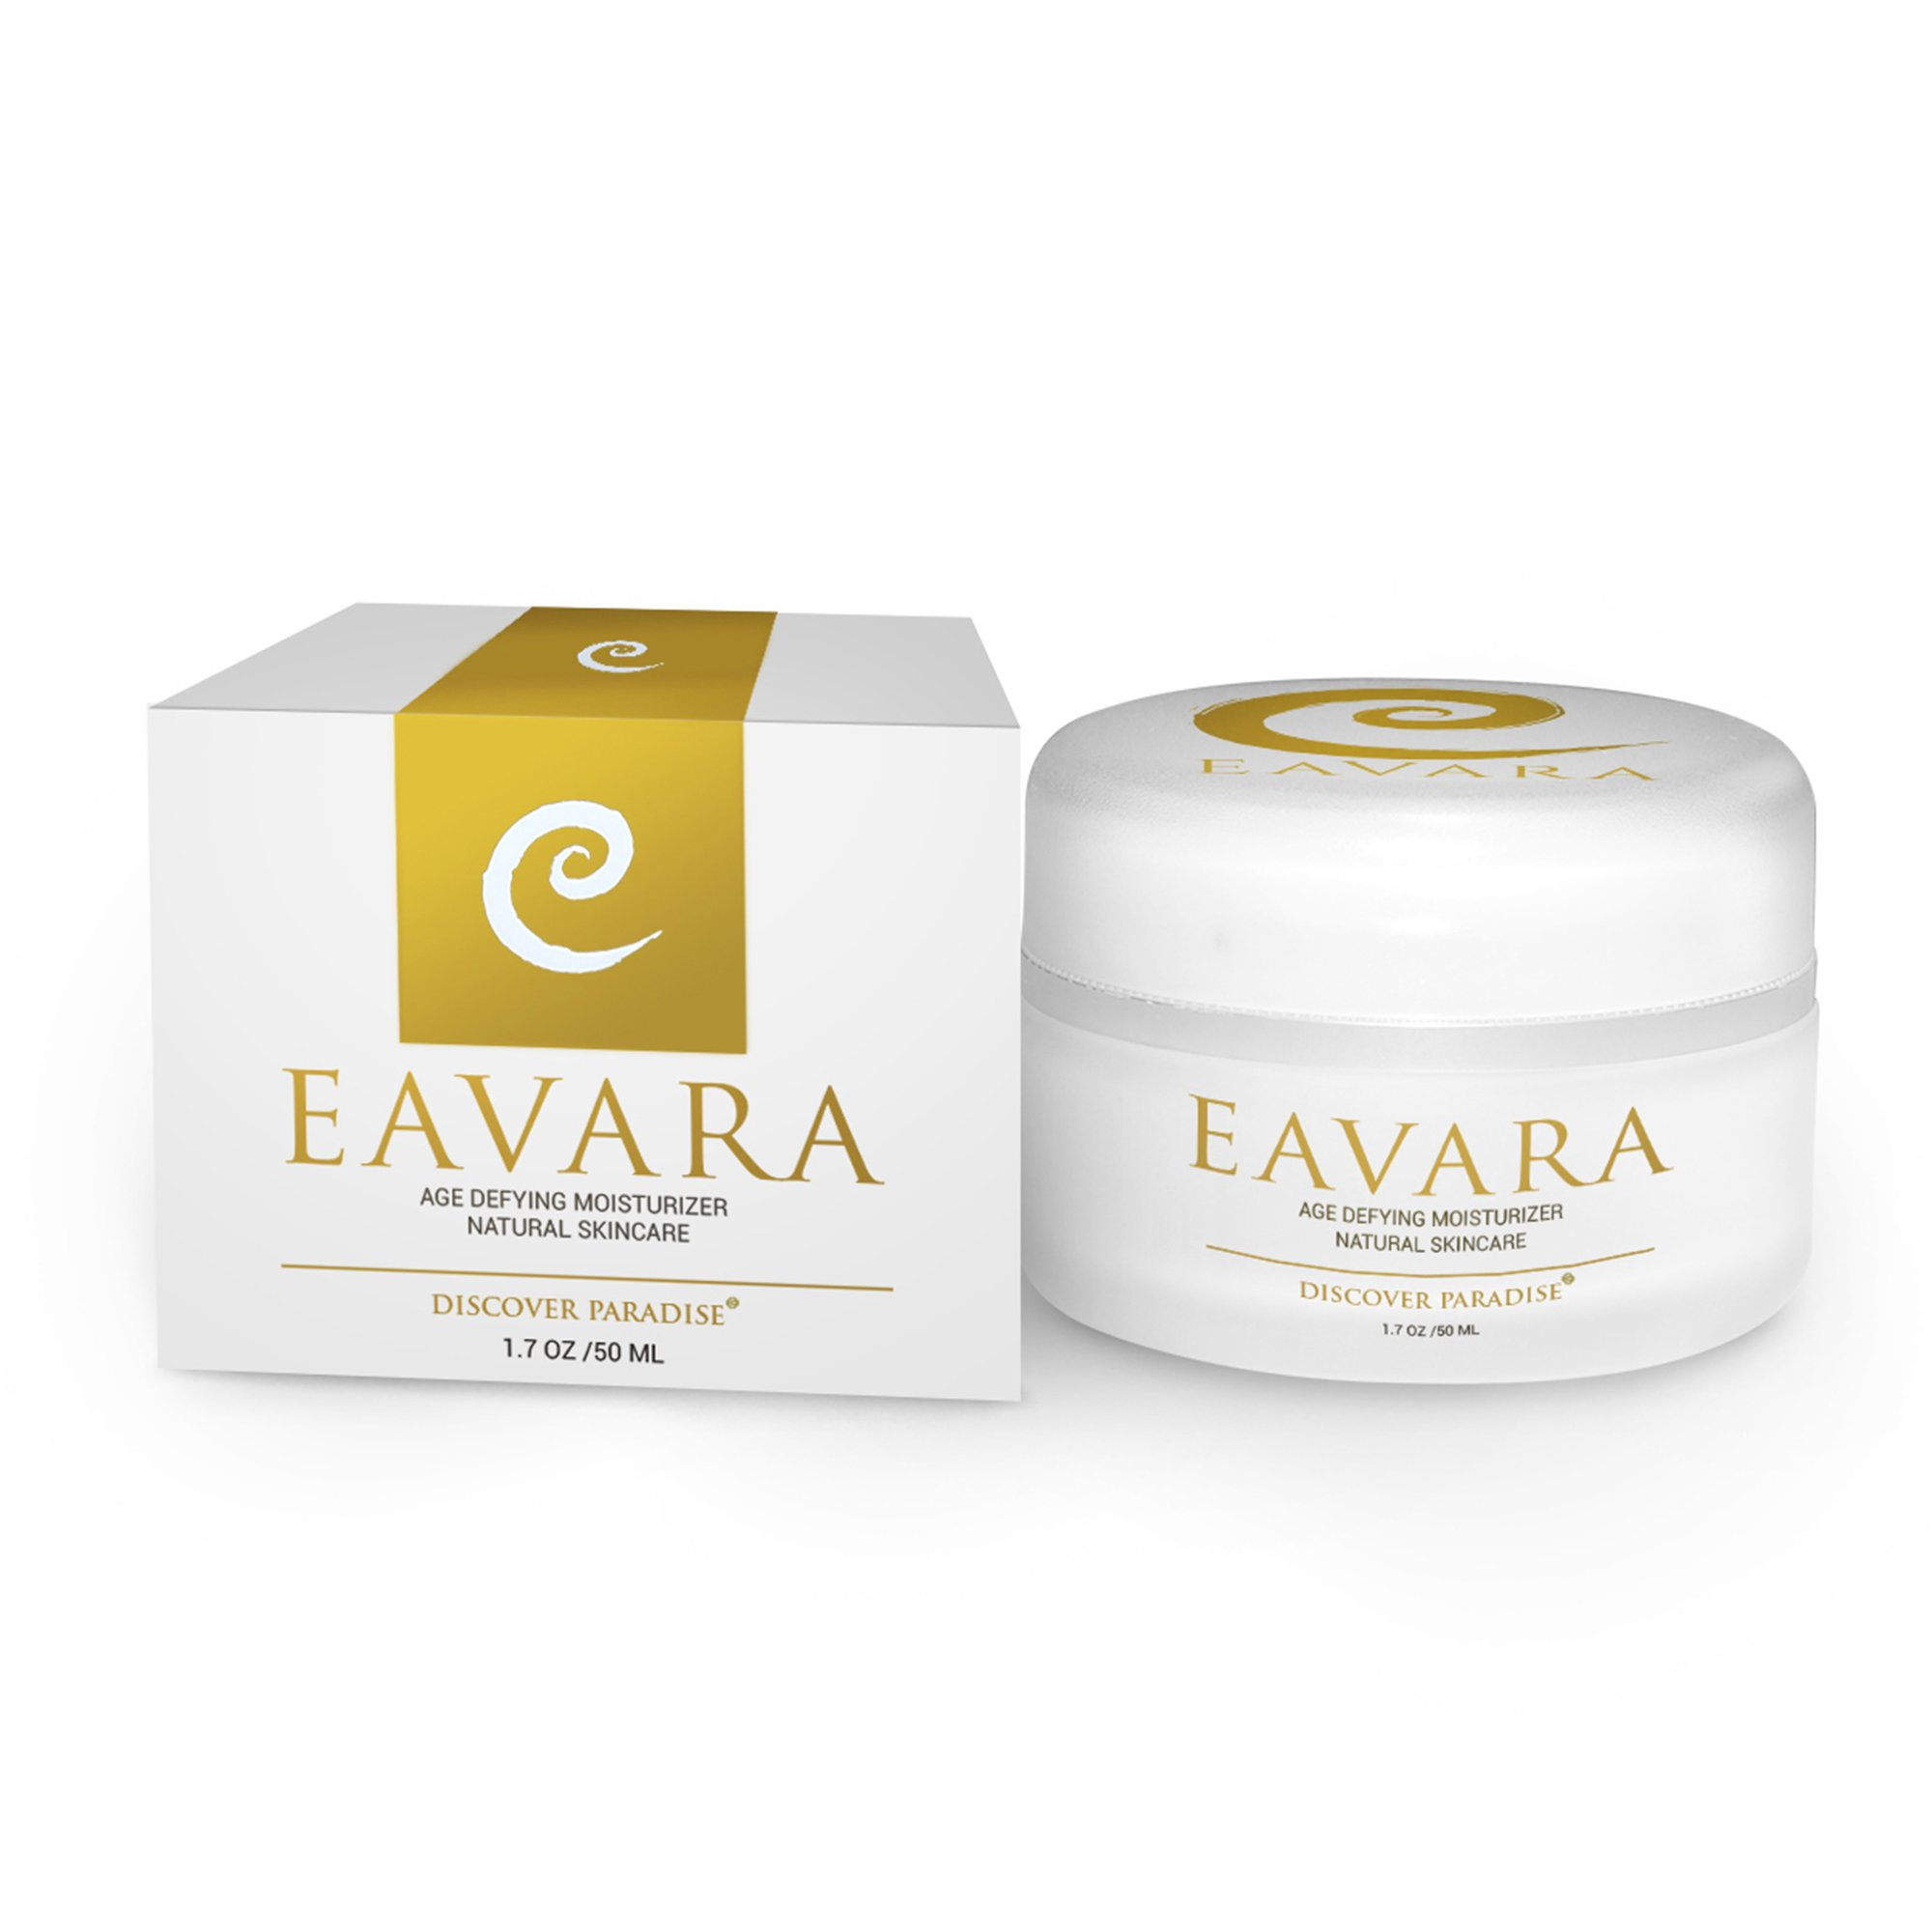 Anti Wrinkle, Anti Aging Daily Moisturizer Cream For Women And Men | Natural Organic Wrinkle Firming Skin Care | Hyaluronic Acid | Organic Kukui Oil and Shea Butter | No Parabens or Sulfates by Eavara